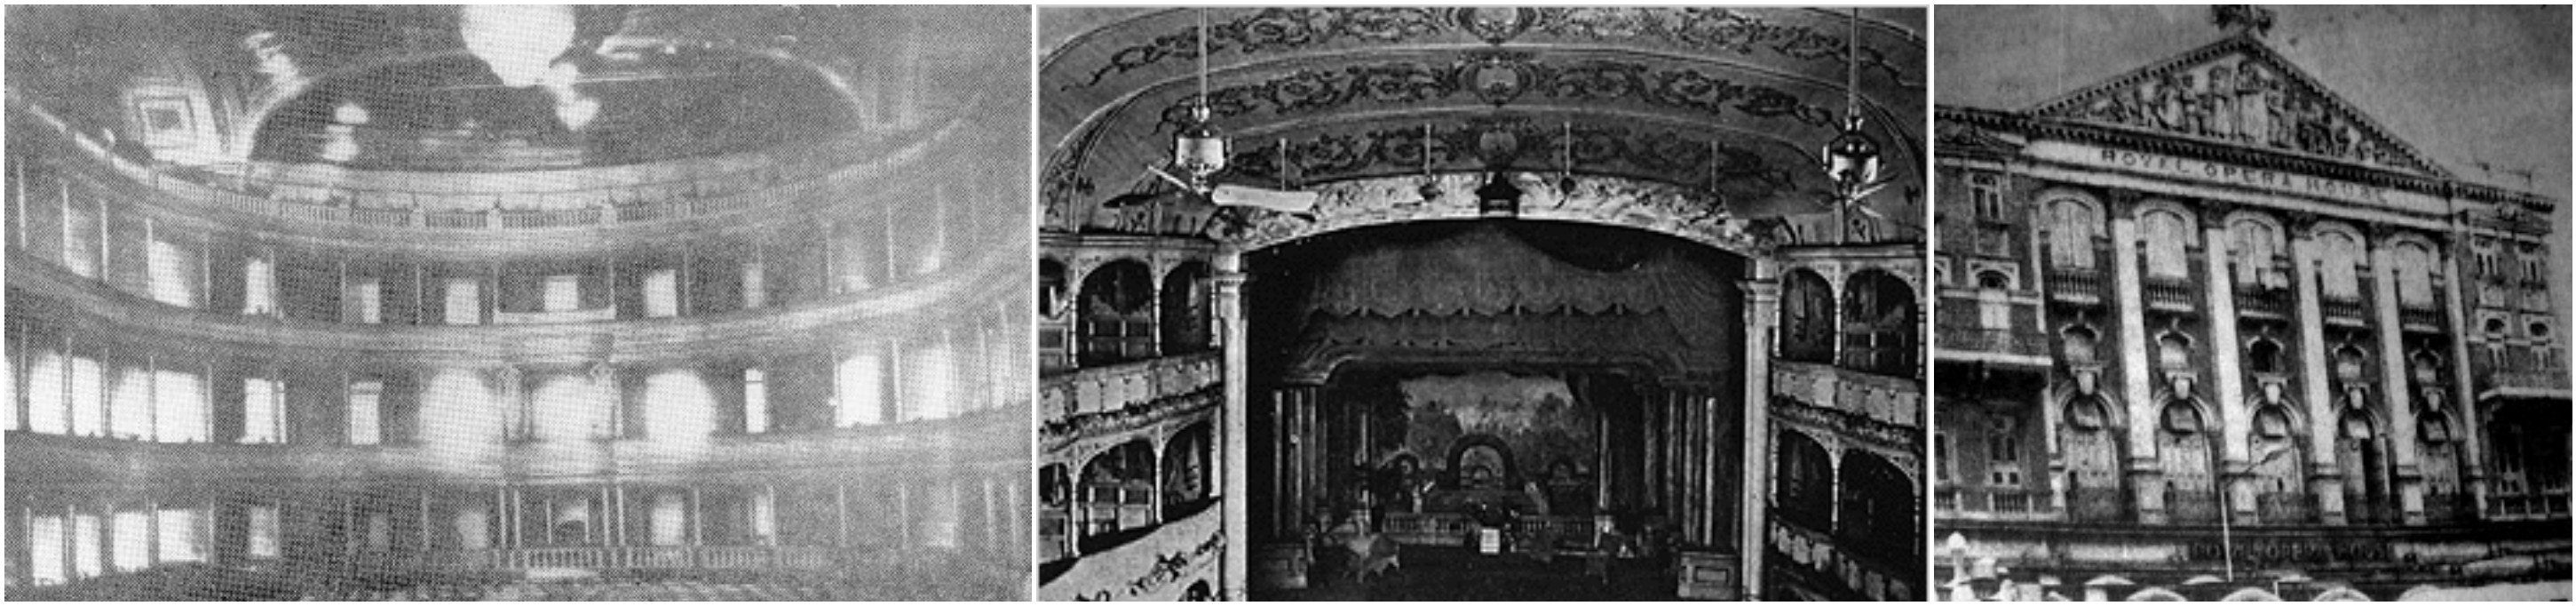 Archival photos of the Royal Opera House.